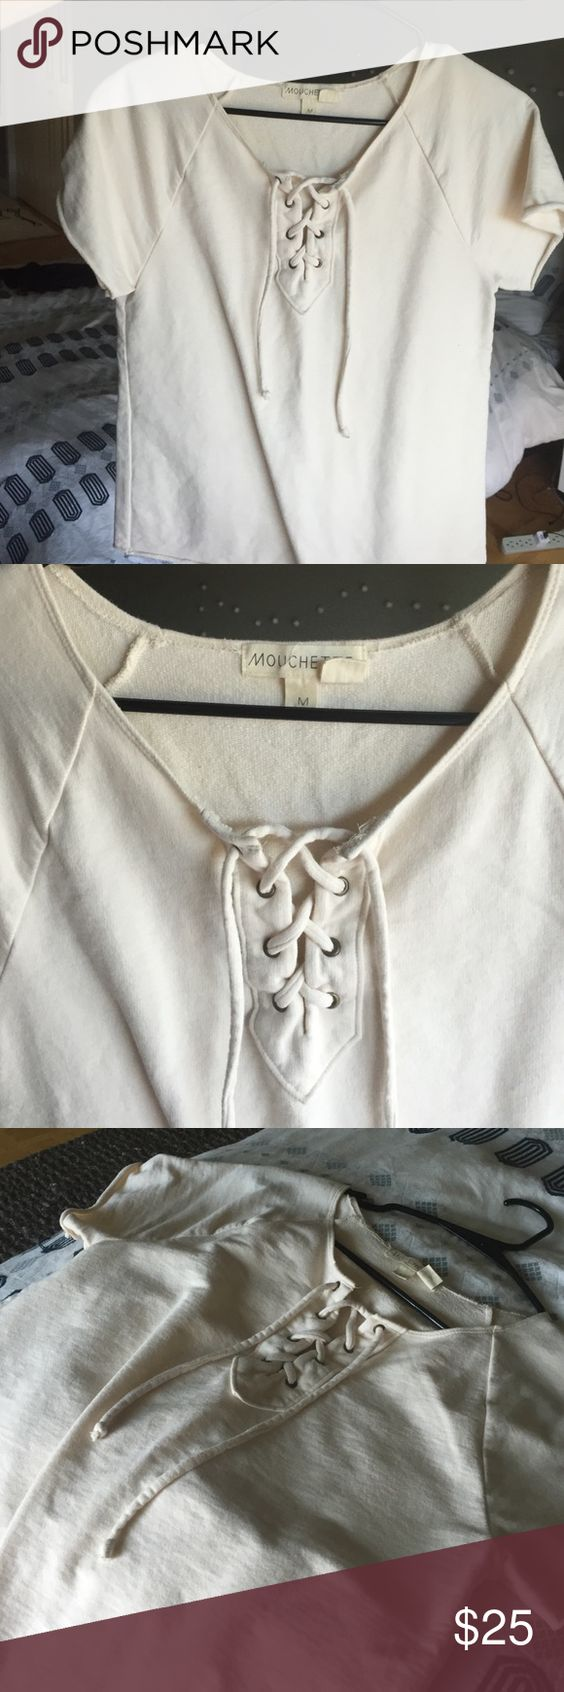 Lace up Urban Outfitters shirt Cream lace up tie shirt. Size medium. Great condition. Worn only a few times. Urban Outfitters Tops